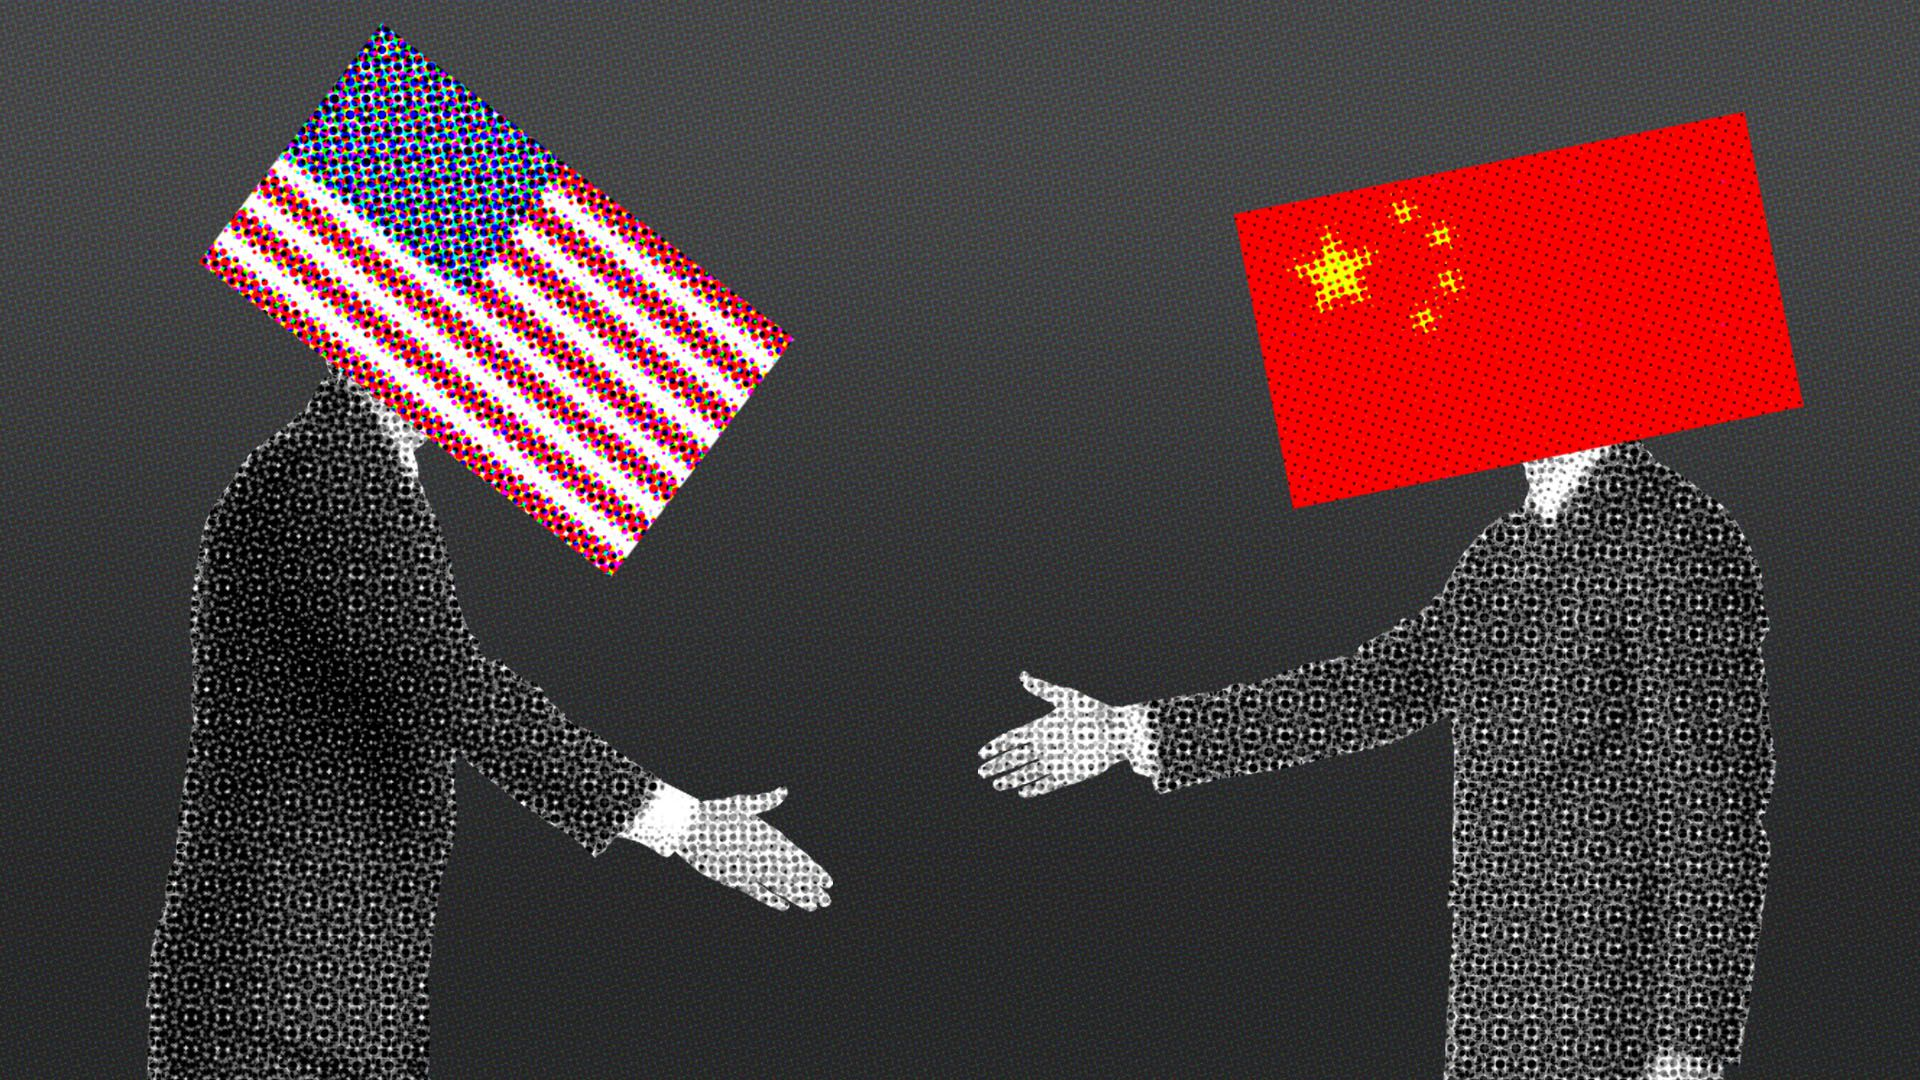 Illustration of two businessmen with a Chinese flag and a U.S. flag standing far apart